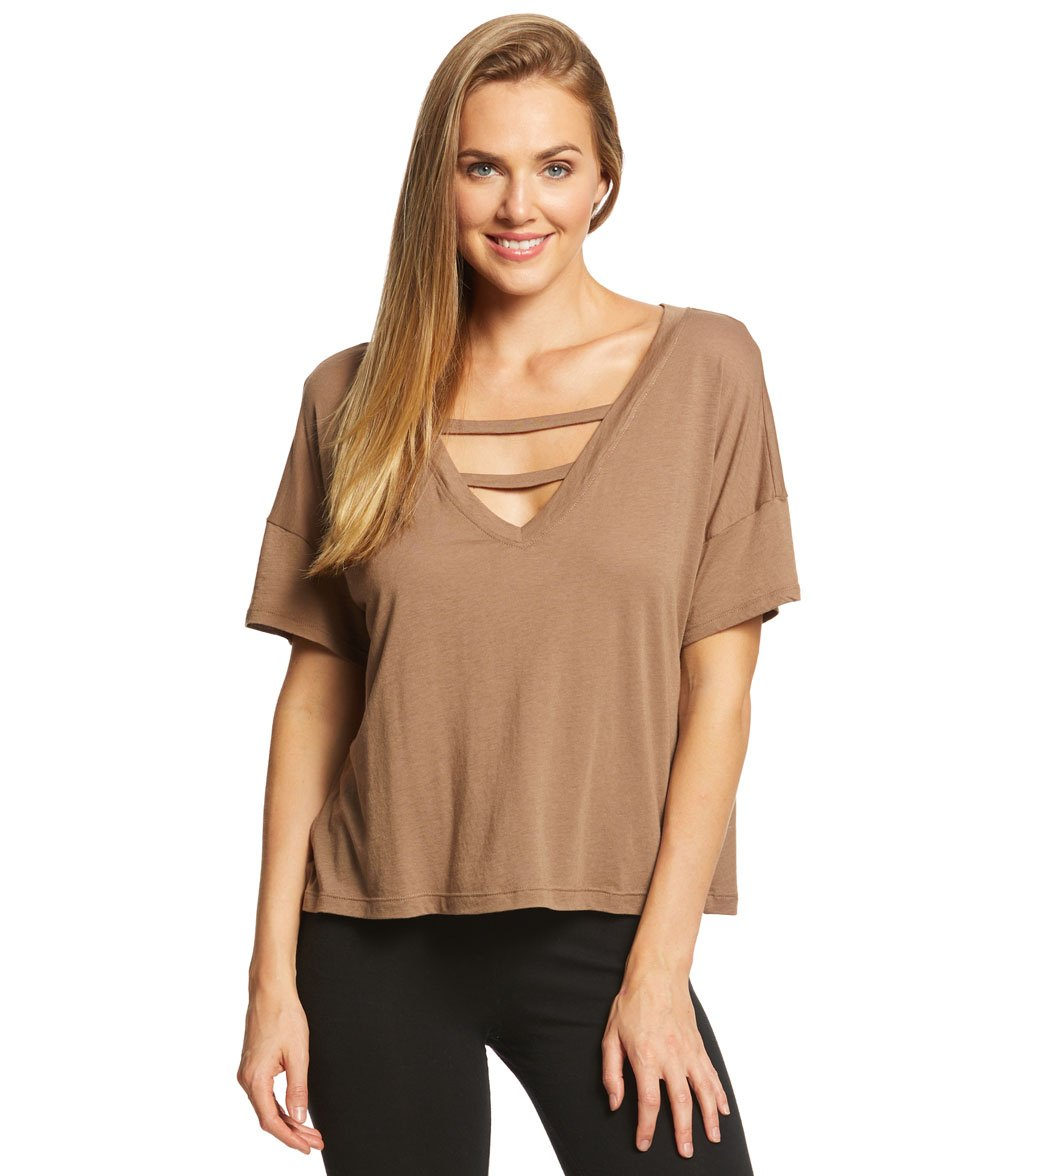 27b15baee91eae Beyond Yoga Full Eclipse V-Neck Tee at SwimOutlet.com - Free Shipping